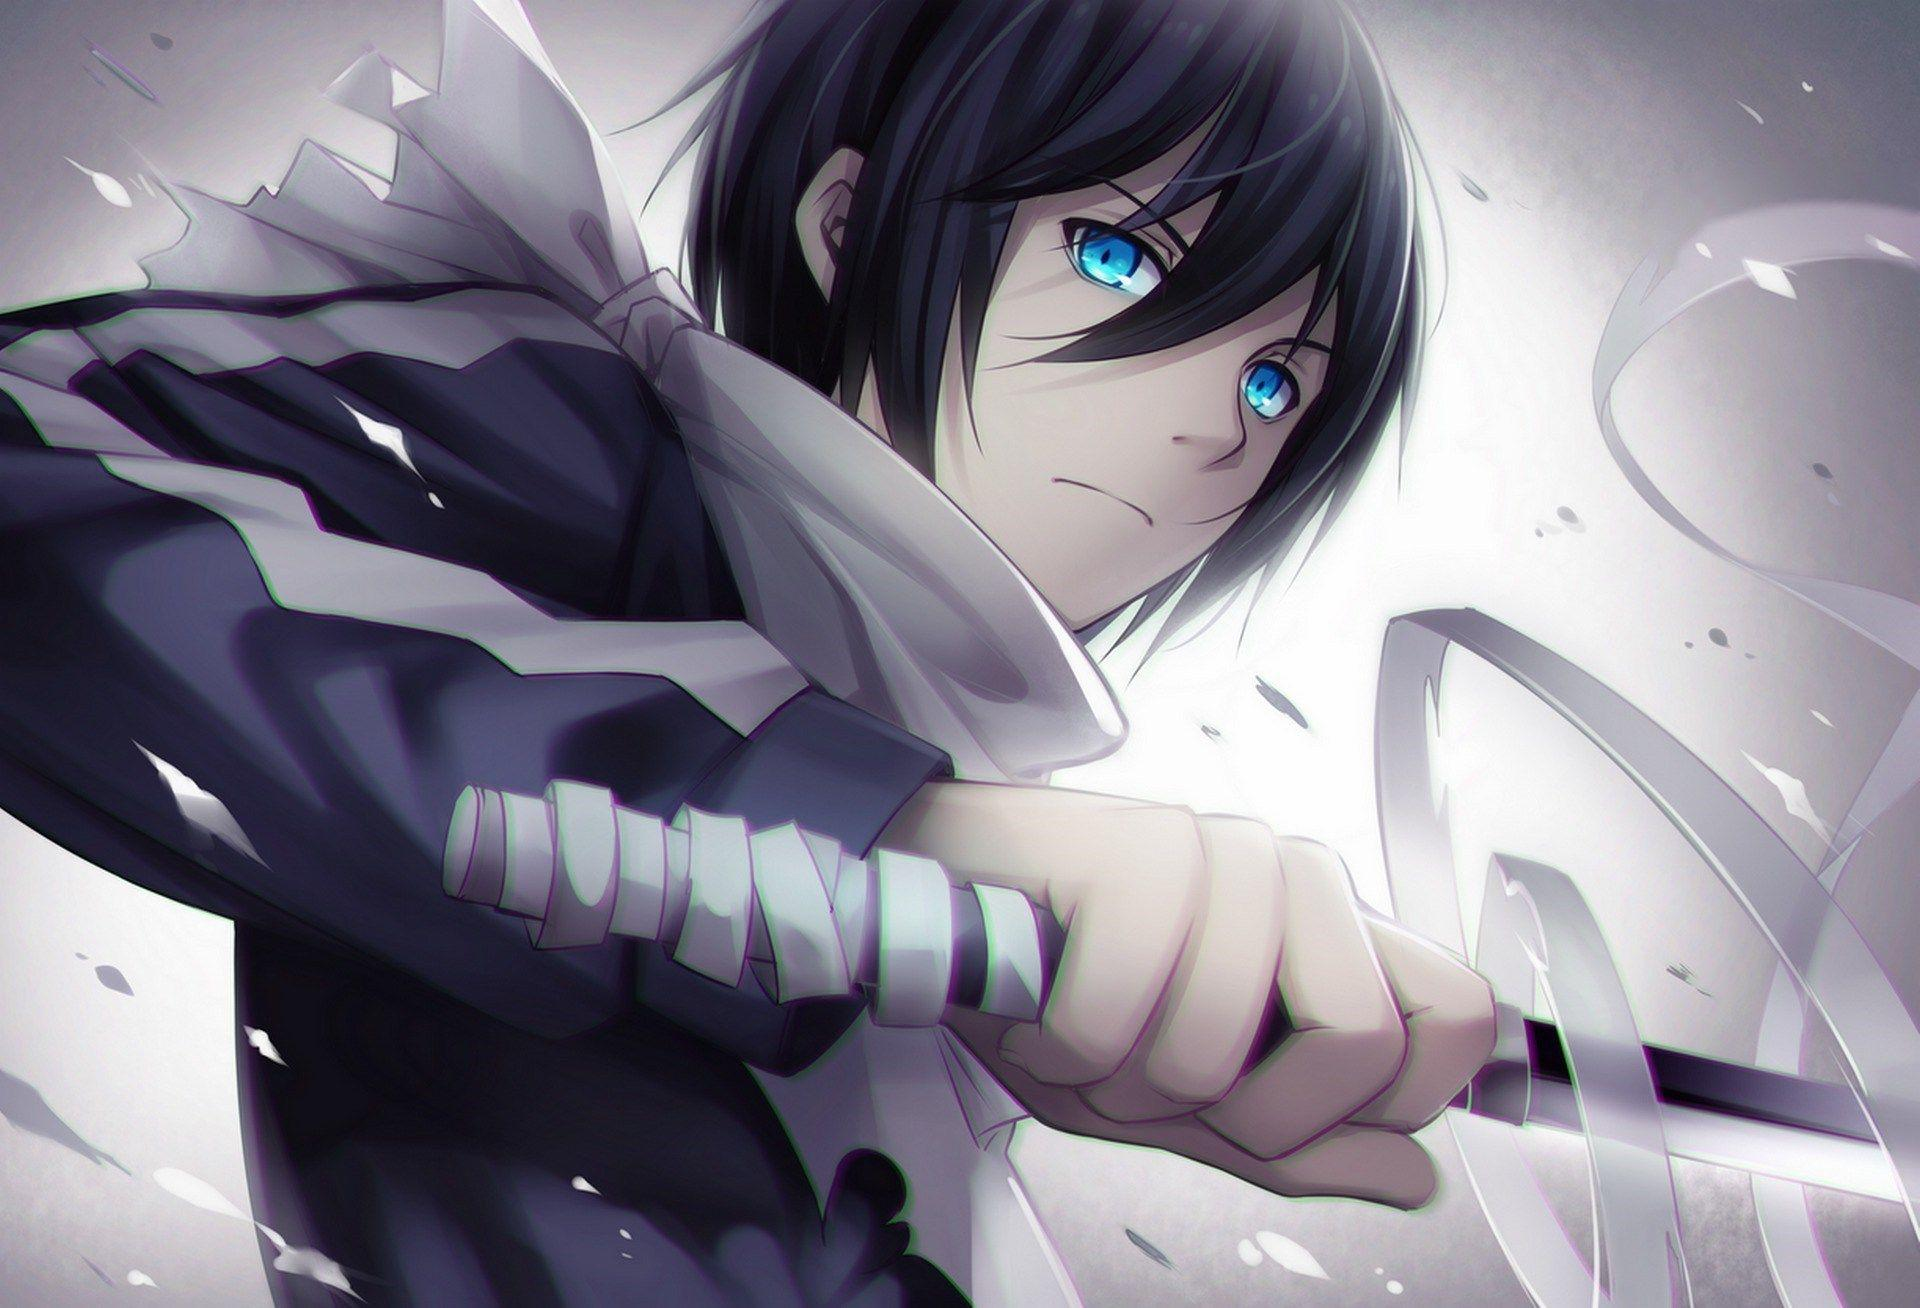 Cool boy anime wallpapers wallpaper cave - Cool anime wallpapers for phone ...